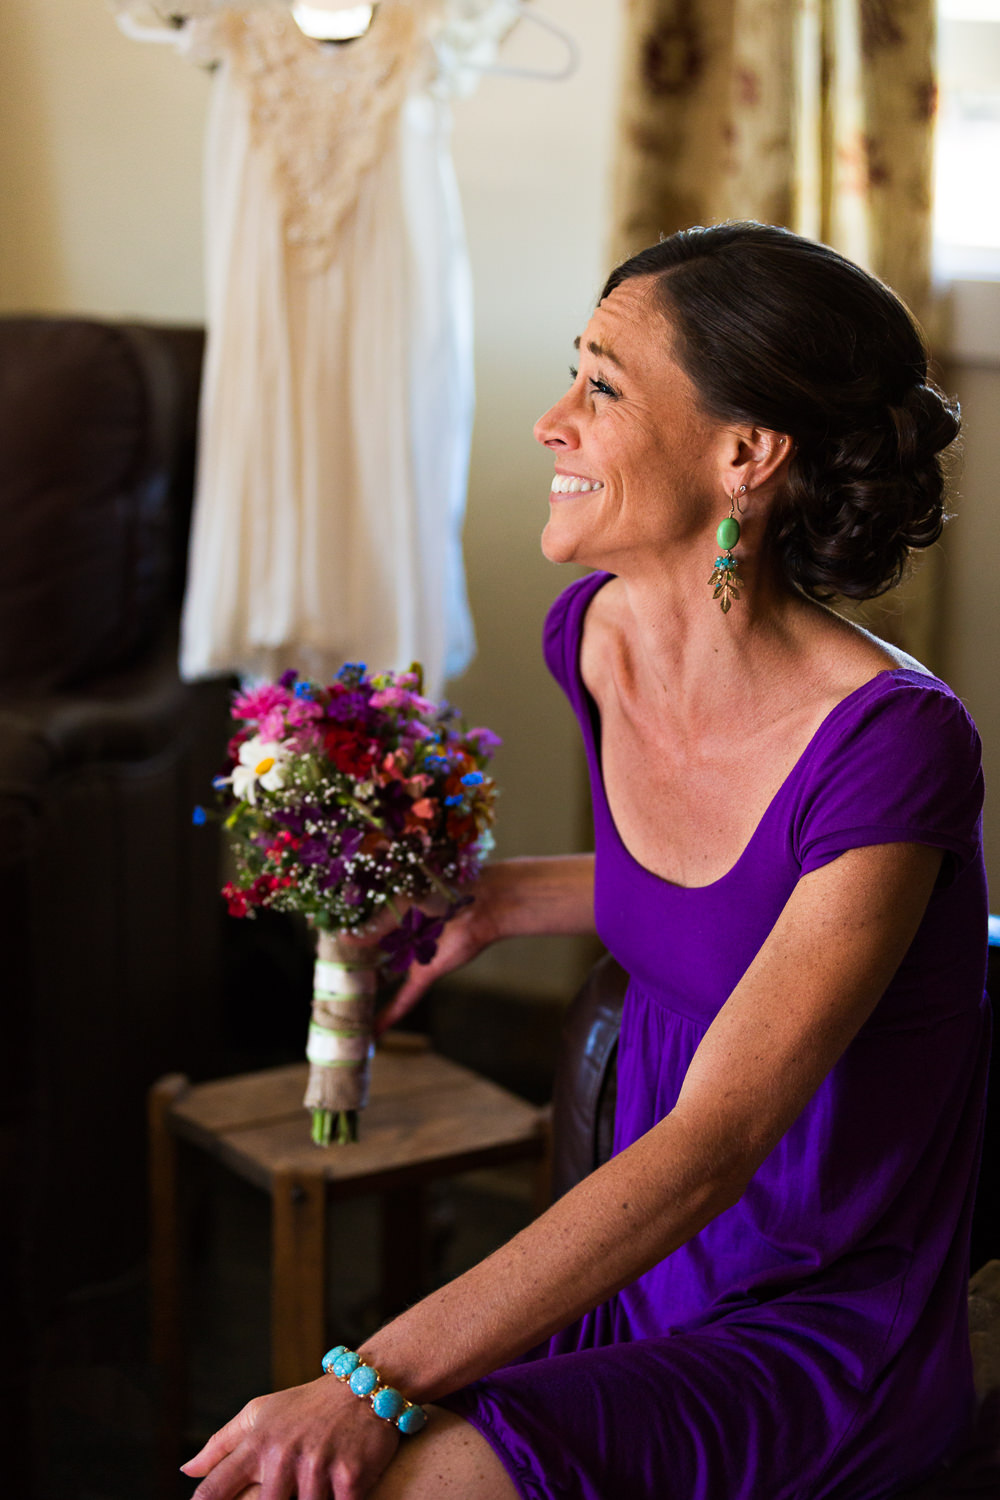 mcleod-montana-wedding-bride-laughs-while-getting-ready.jpg